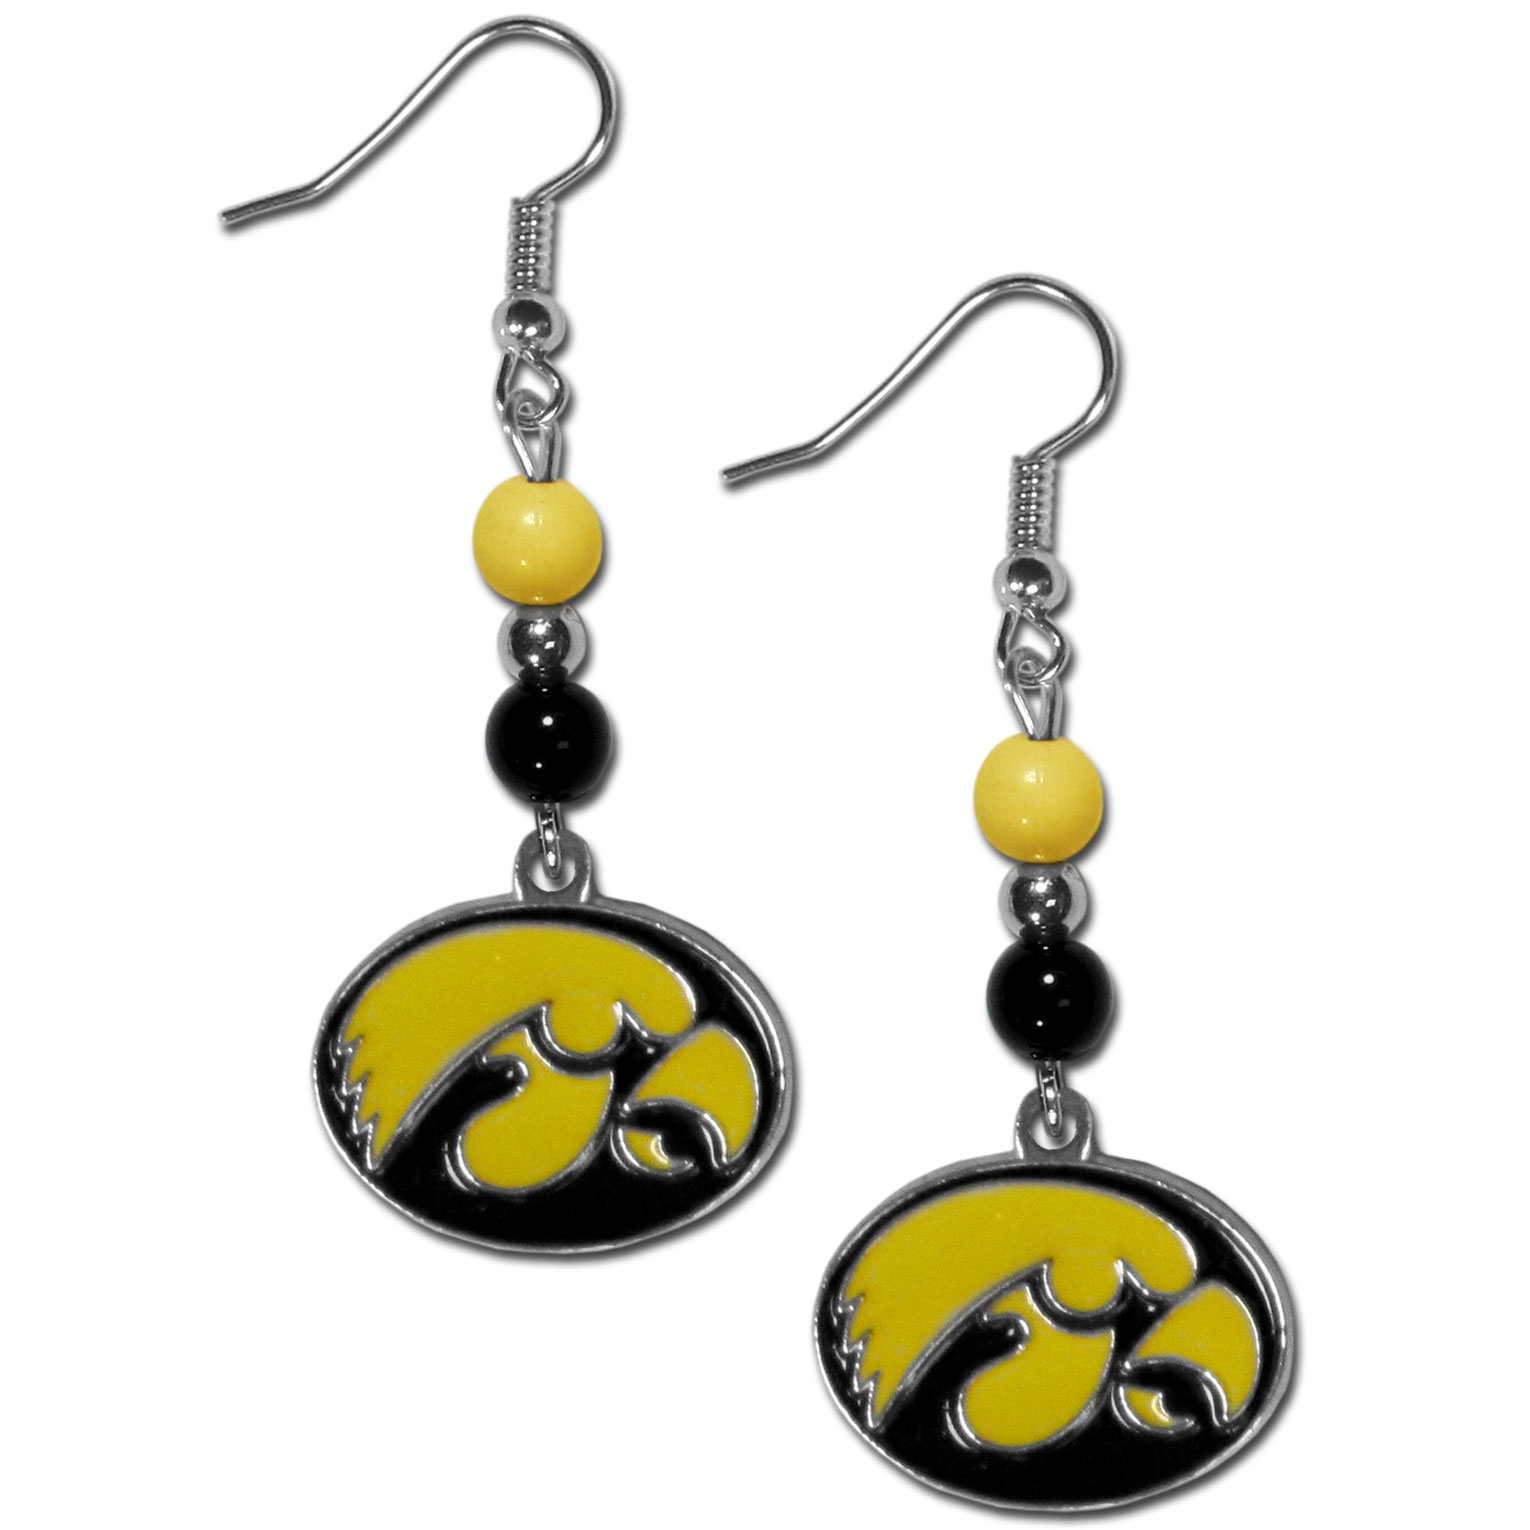 Iowa Hawkeyes Fan Bead Dangle Earrings - Love your team, show it off with our Iowa Hawkeyes bead dangle earrings! These super cute earrings hang approximately 2 inches and features 2 team colored beads and a high polish team charm. A must have for game day!